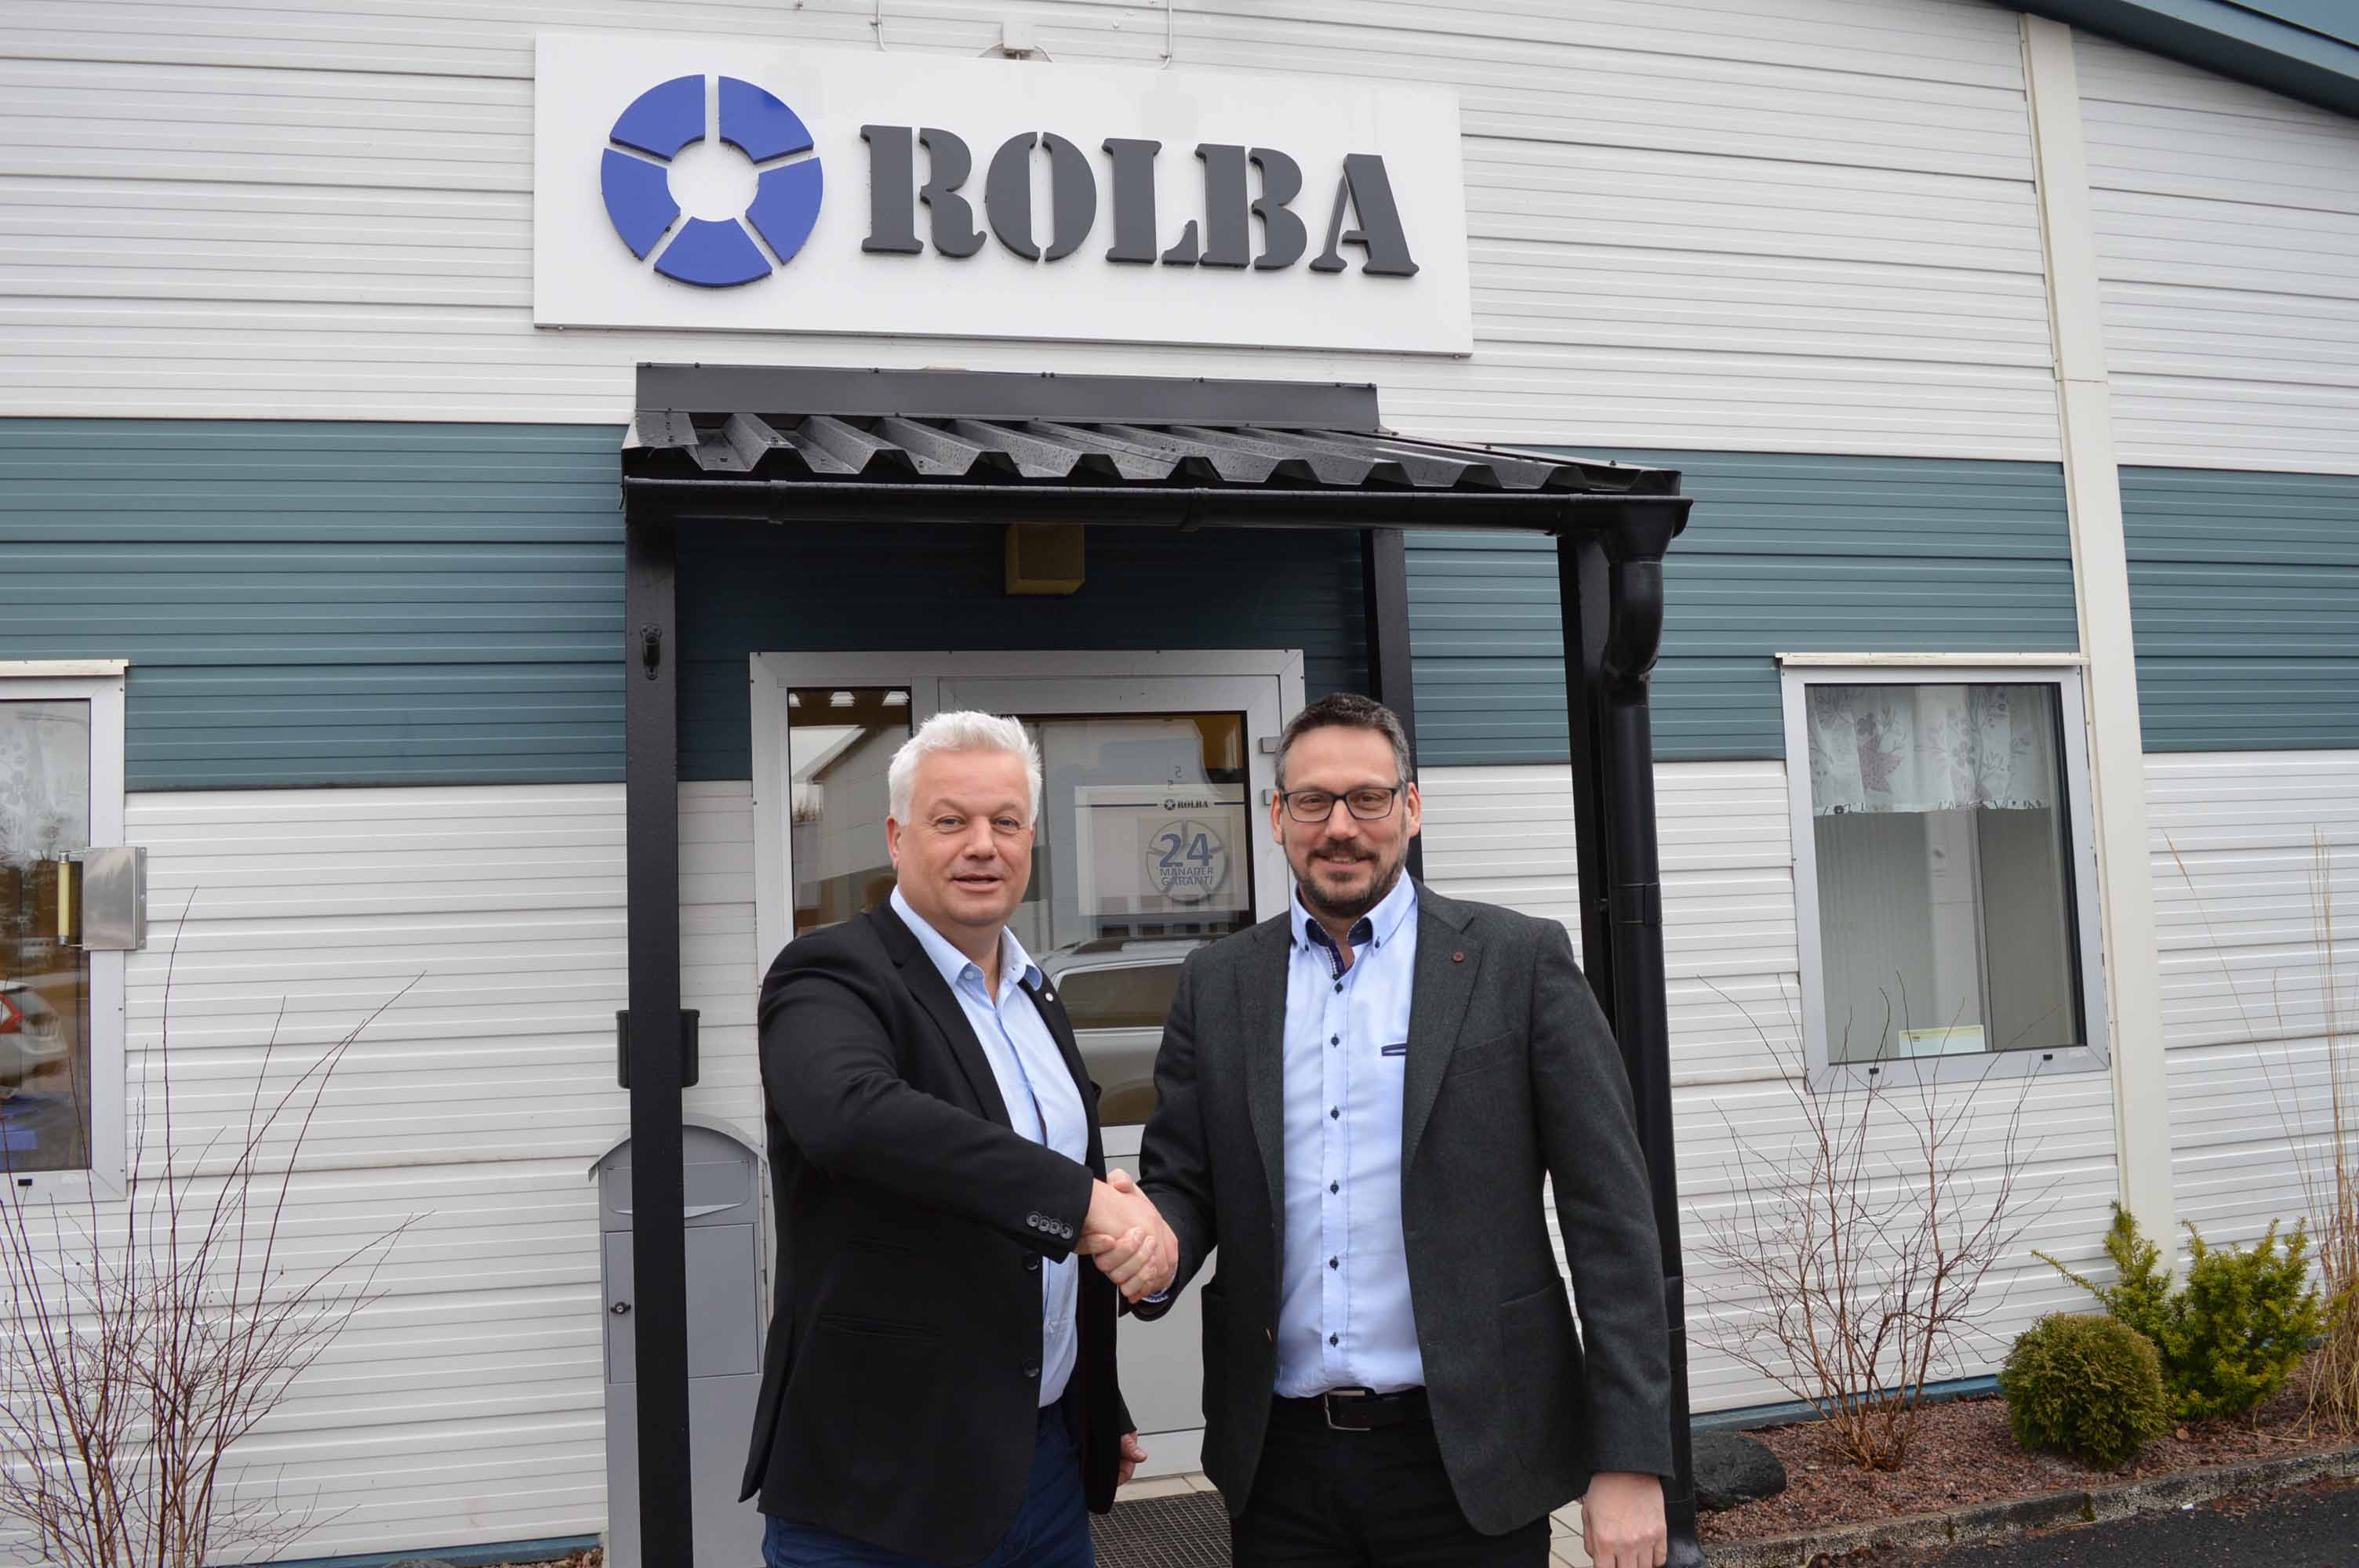 Urban Åhrlin, Managing Director of Rolba Svenska and Rioneds Hans de Laat